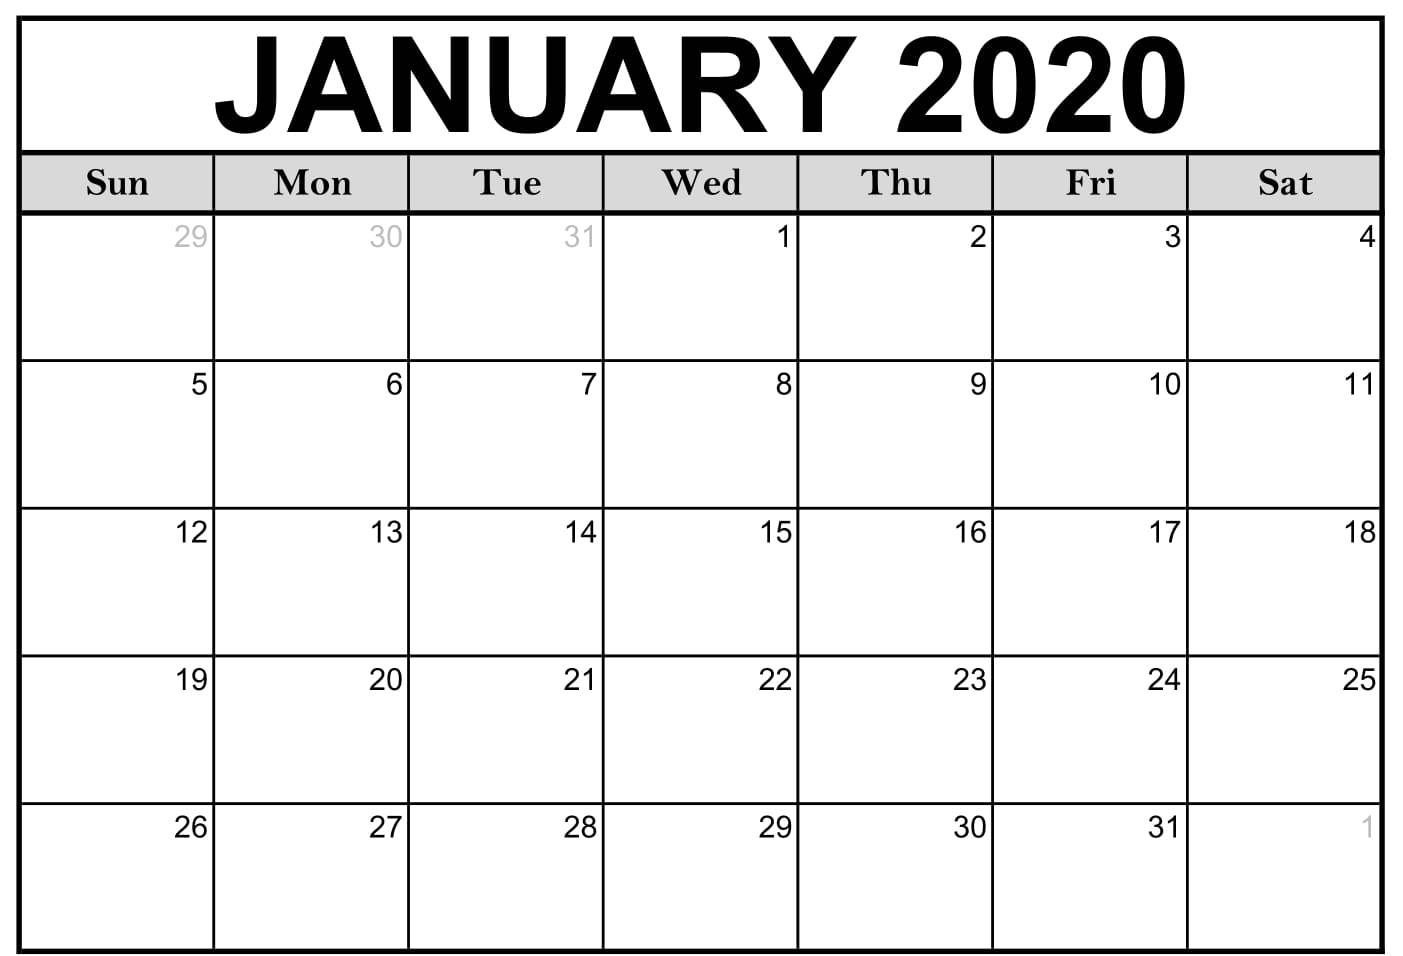 January 2020 Calendar Template | Free Printable Calendar Extraordinary January 2020 Printable Calendar Canada